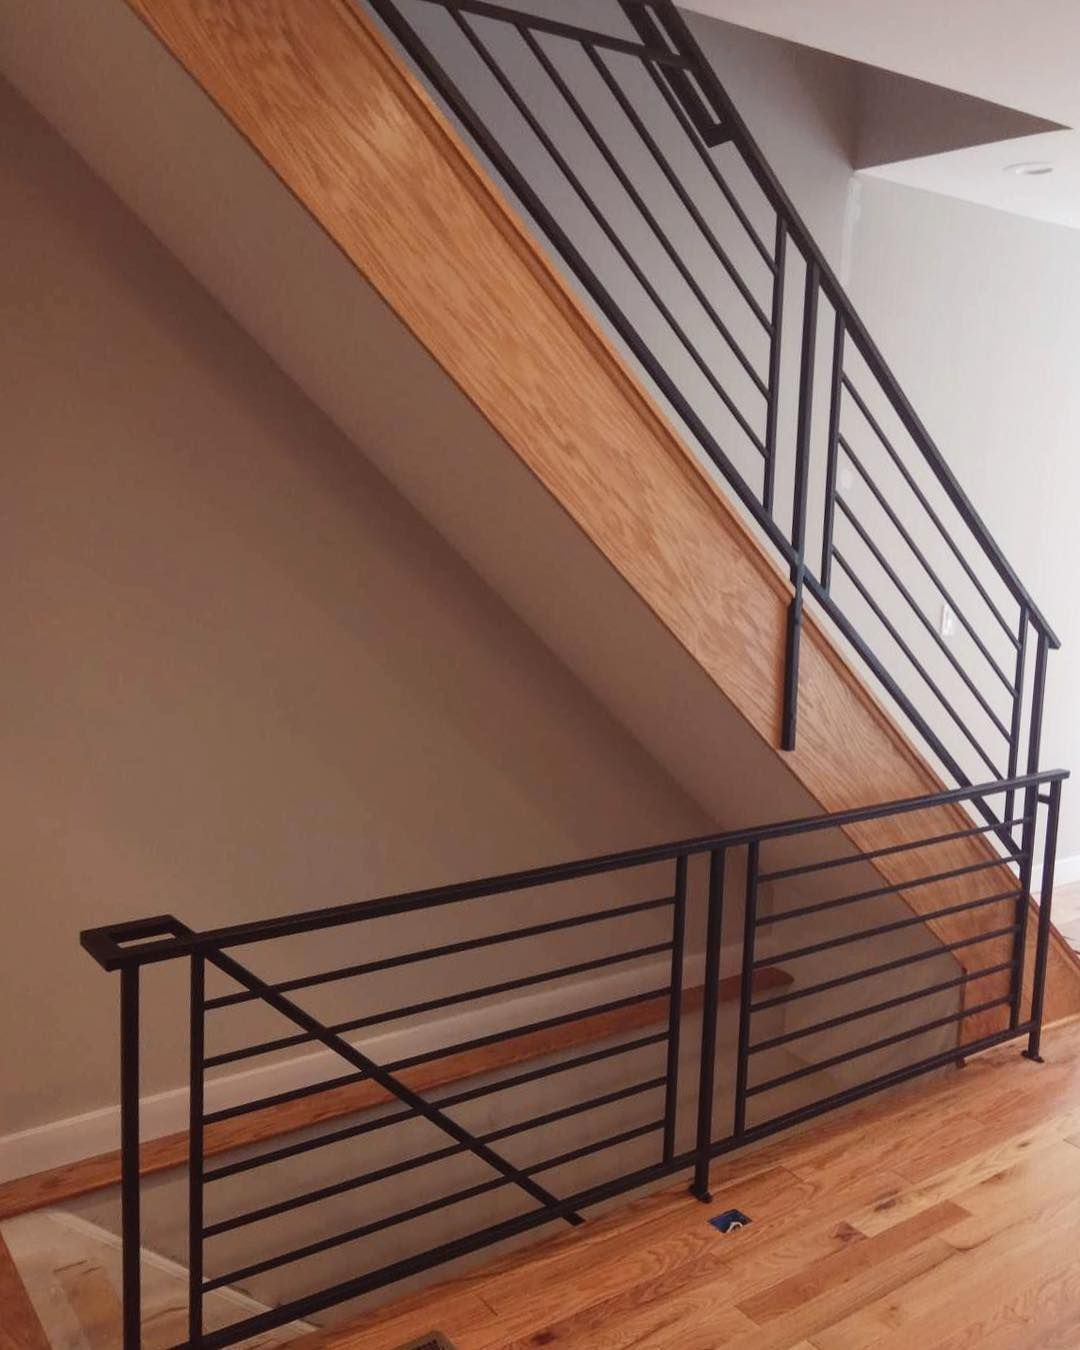 Welding Jobs Near Me 2020 Mig Stainless Steel Aluminum Tig | Stainless Steel Handrails Near Me | Metal | Cable Railing | Glass Railing Systems | Relaxdays Stainless | Staircase Railing